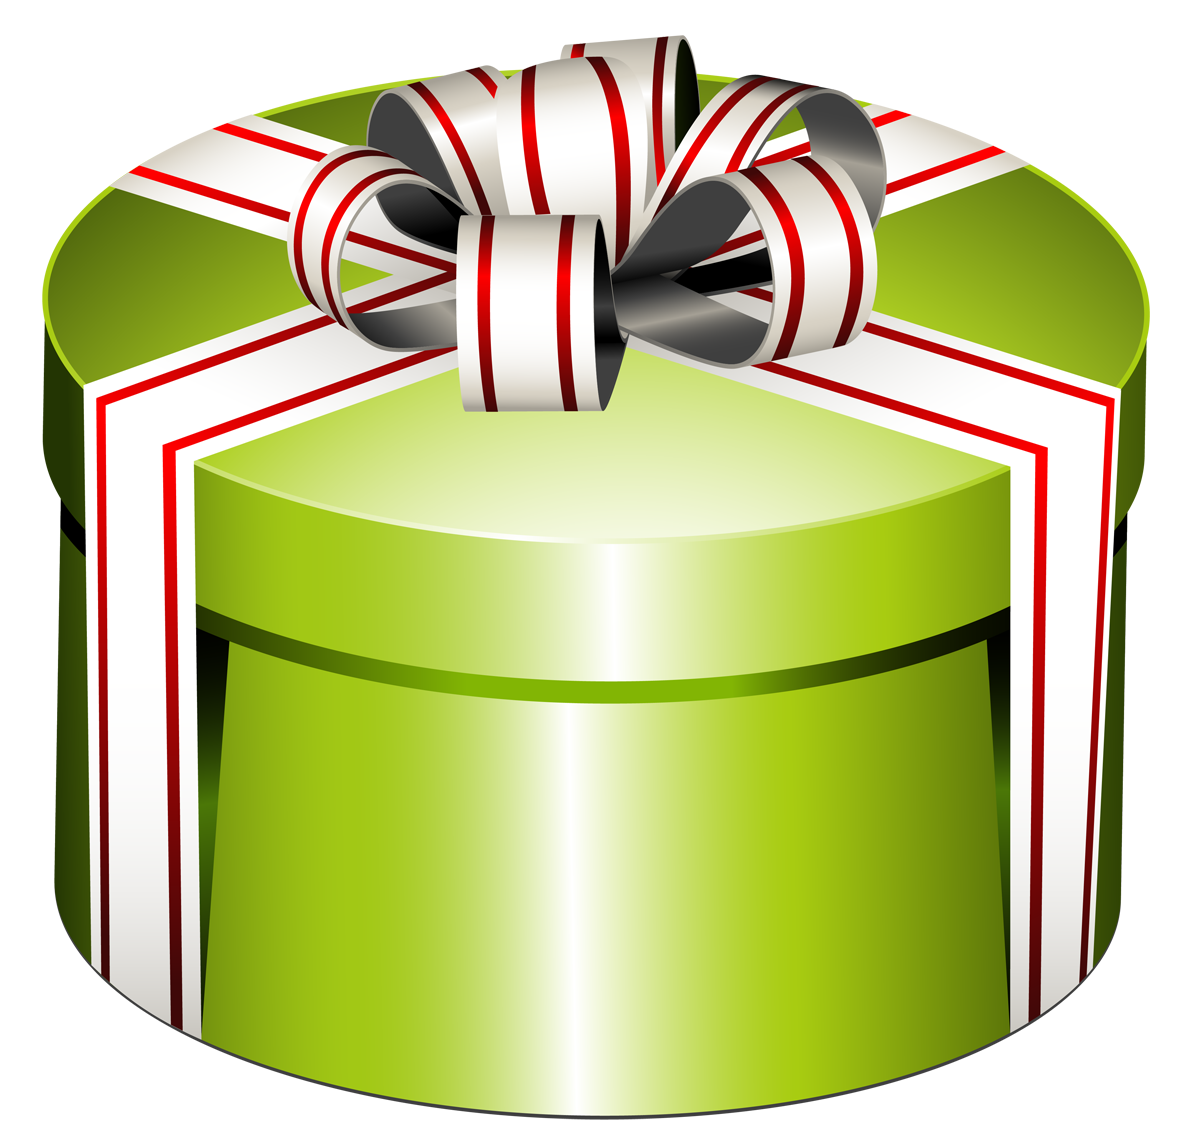 Christmas Gift Box Clipart At Getdrawings Com Free For